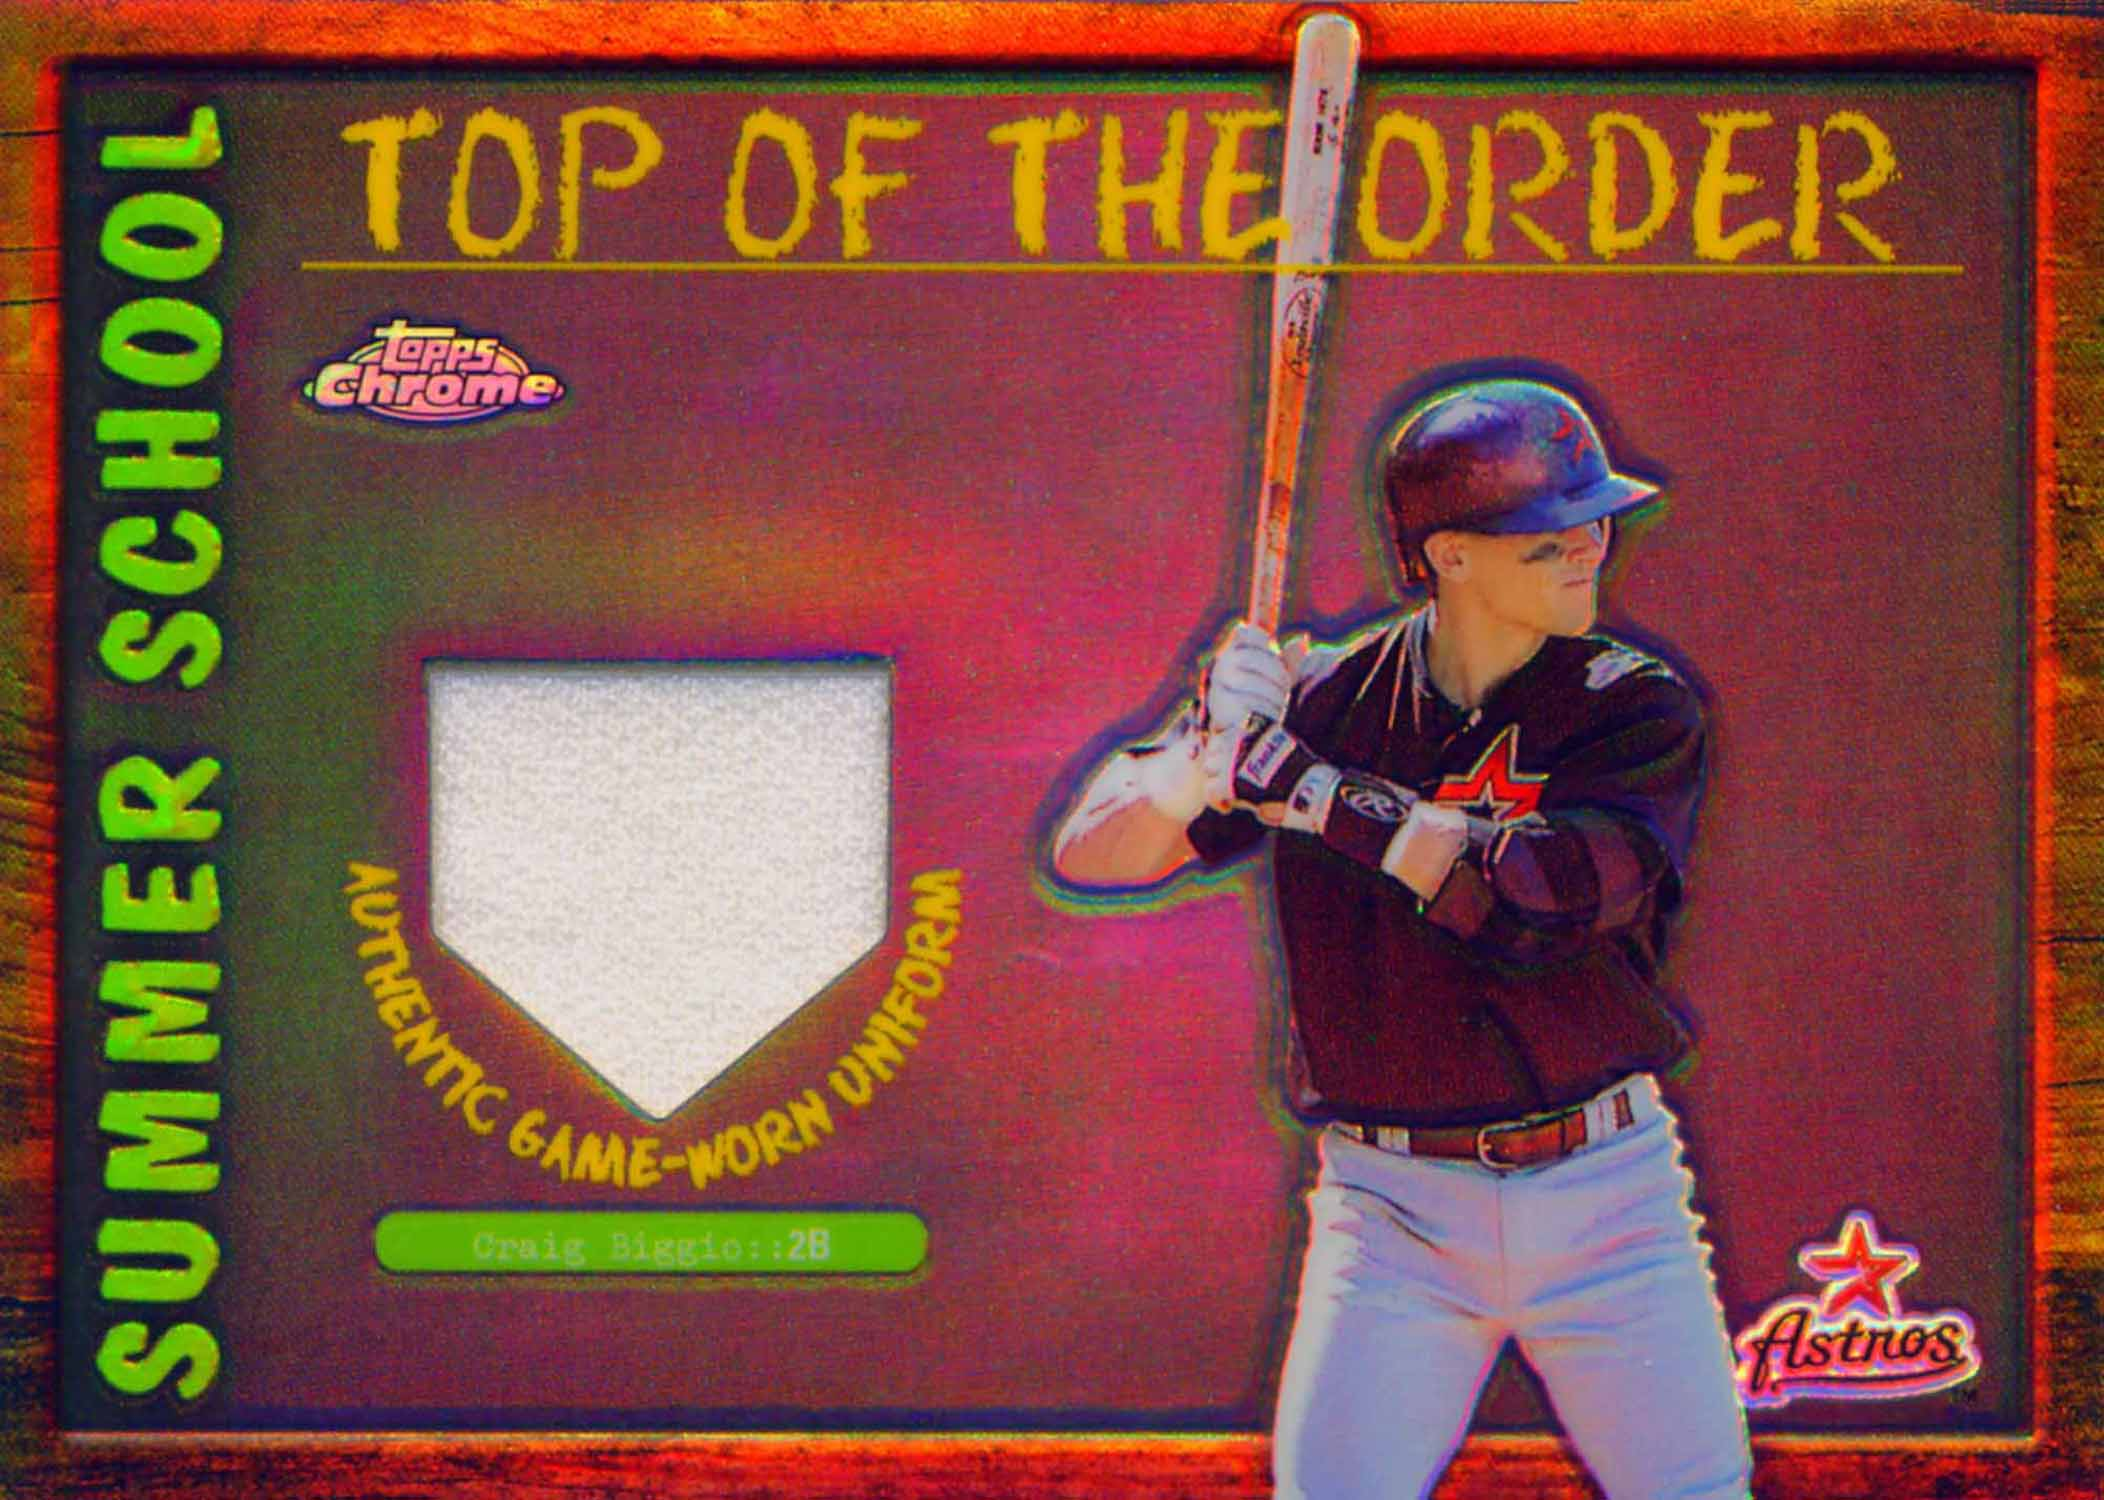 2002 Topps Chrome Summer School Top of the Order Relics Uniform